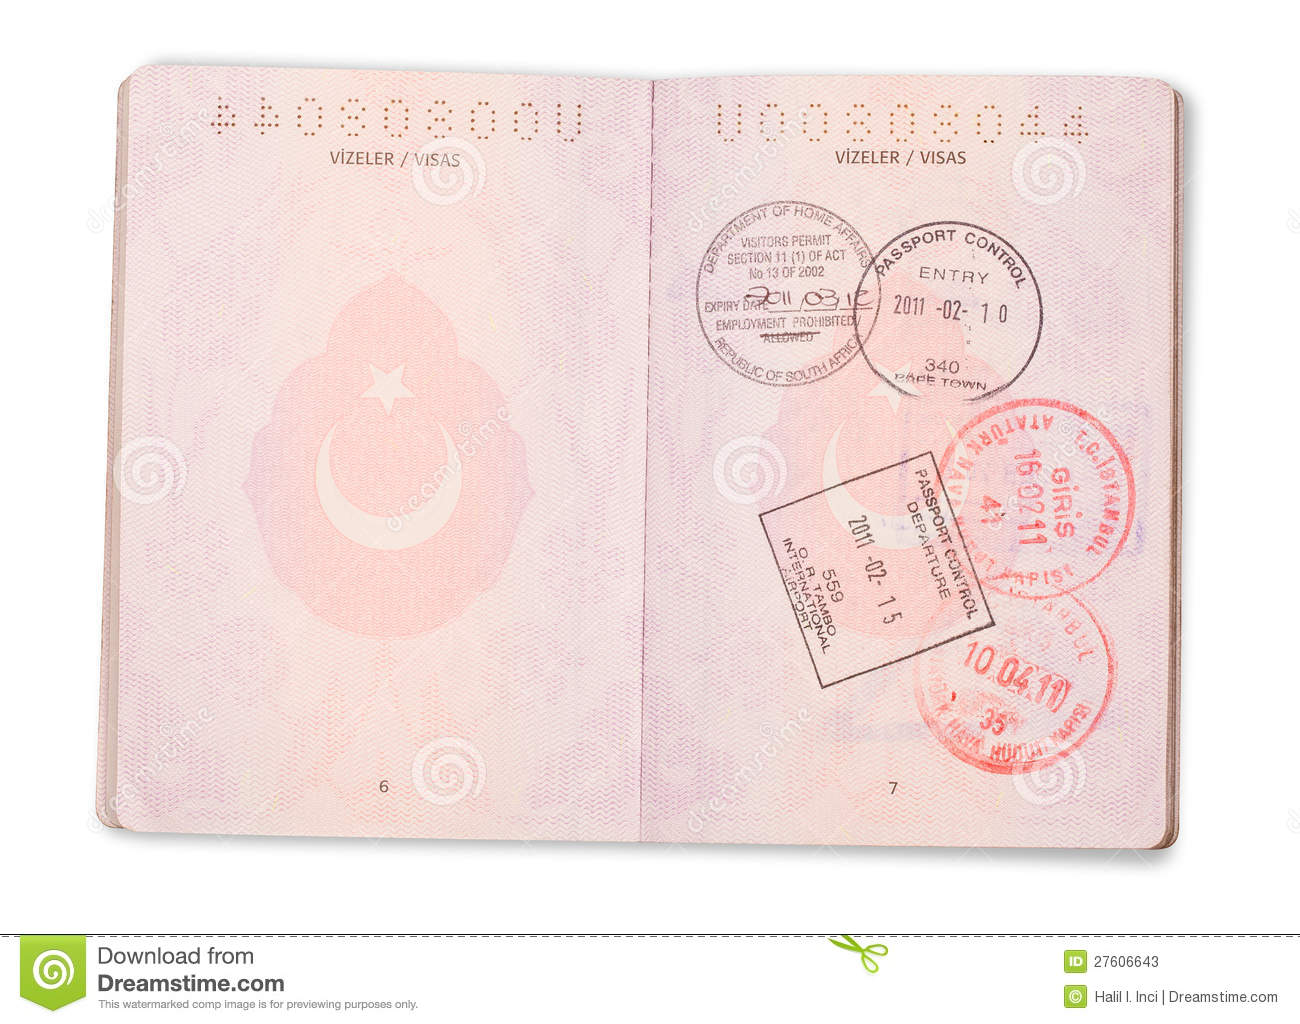 how to get turky passport